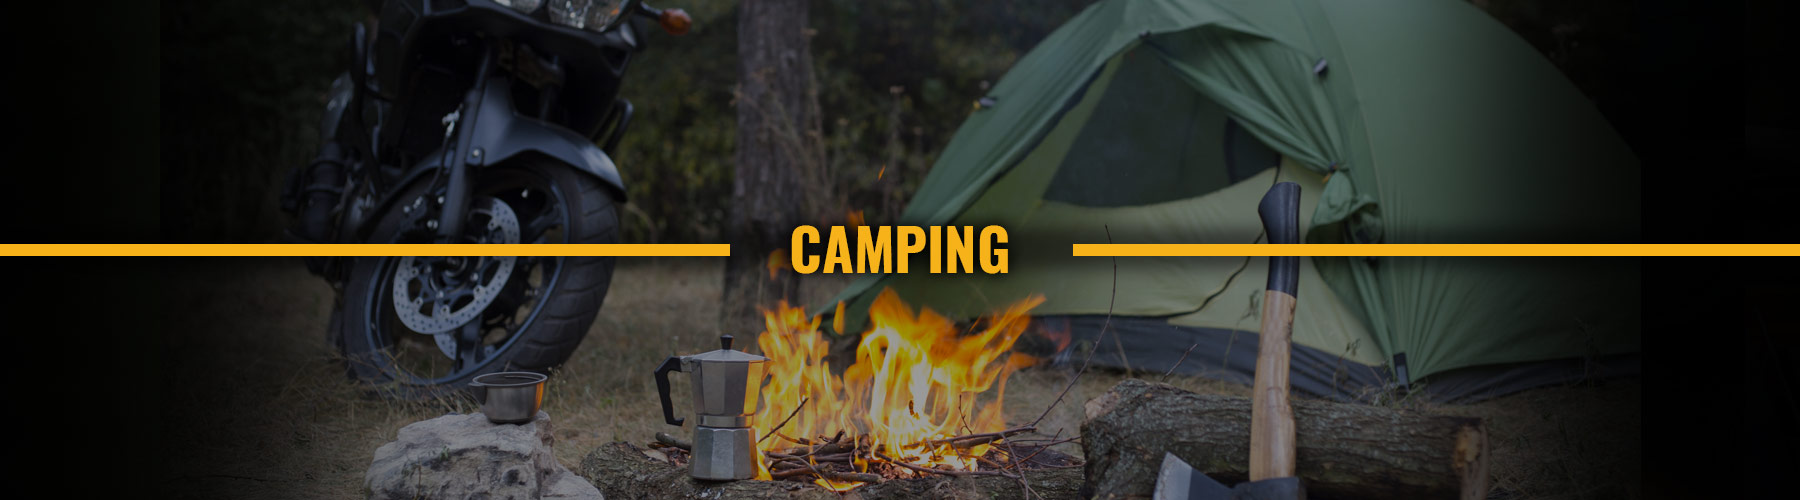 Camping - Twisted Trails - Products-Category